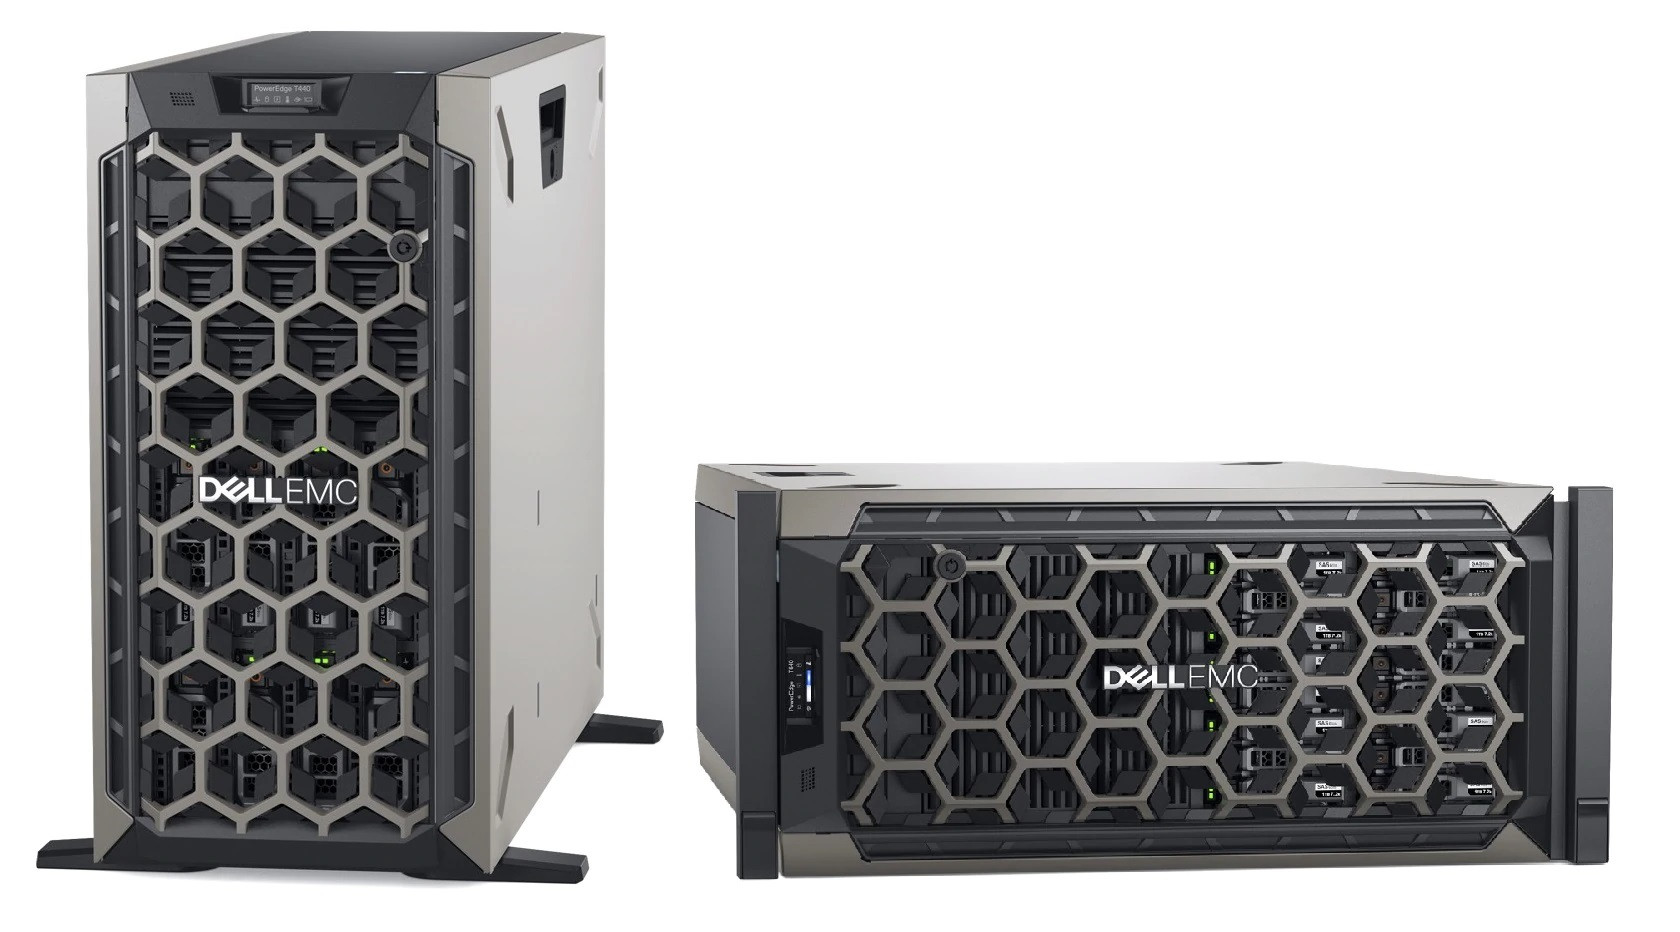 Dell PowerEdge servers shown vertically and horizontally